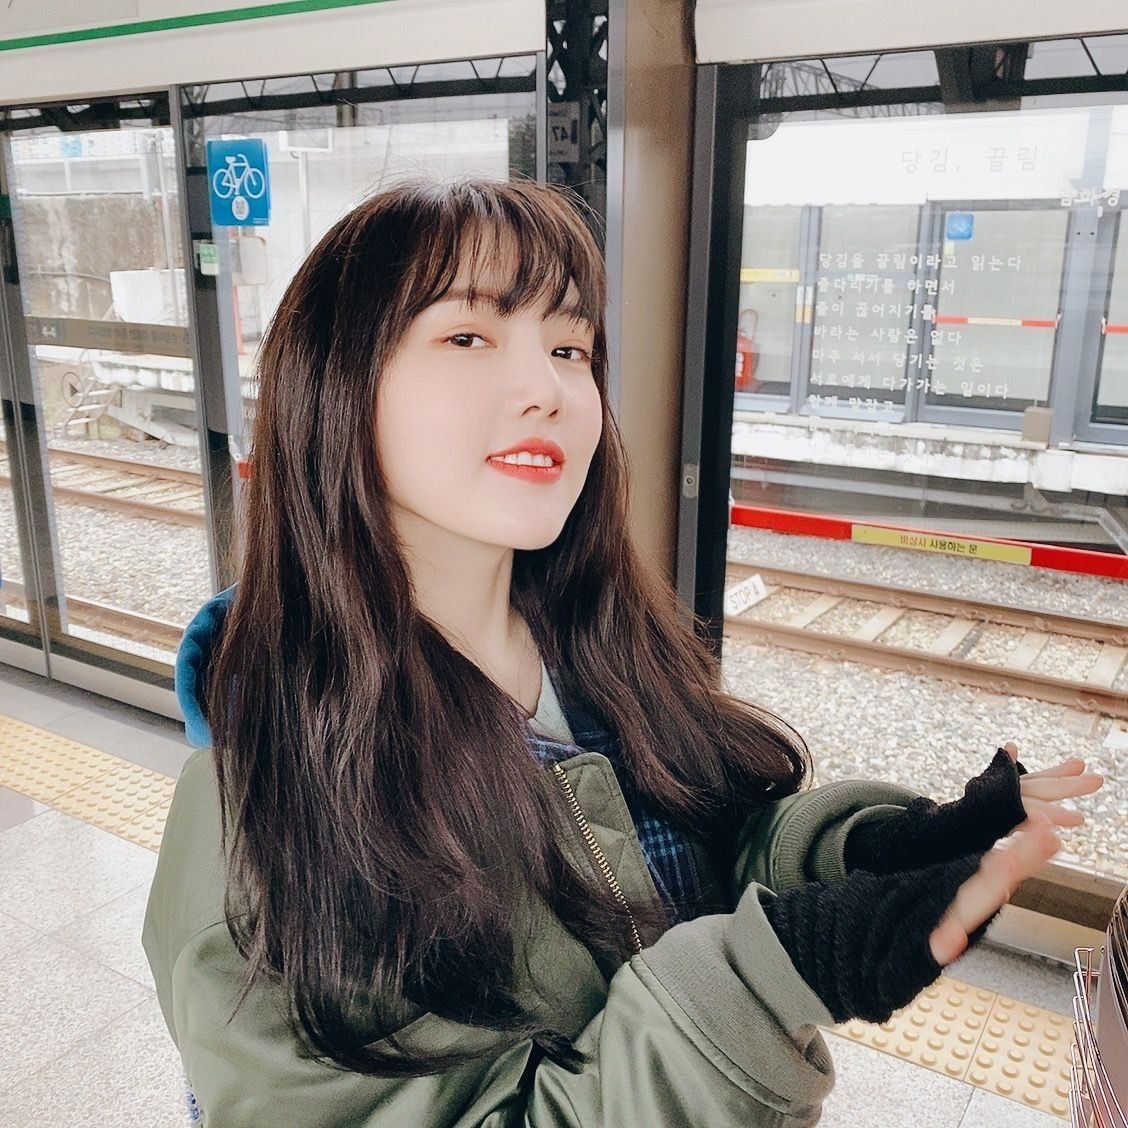 Dear universe, pls send me a yerin i will protect her w my life she is precious i love her pls pic.twitter.com/bQphuVuuYT